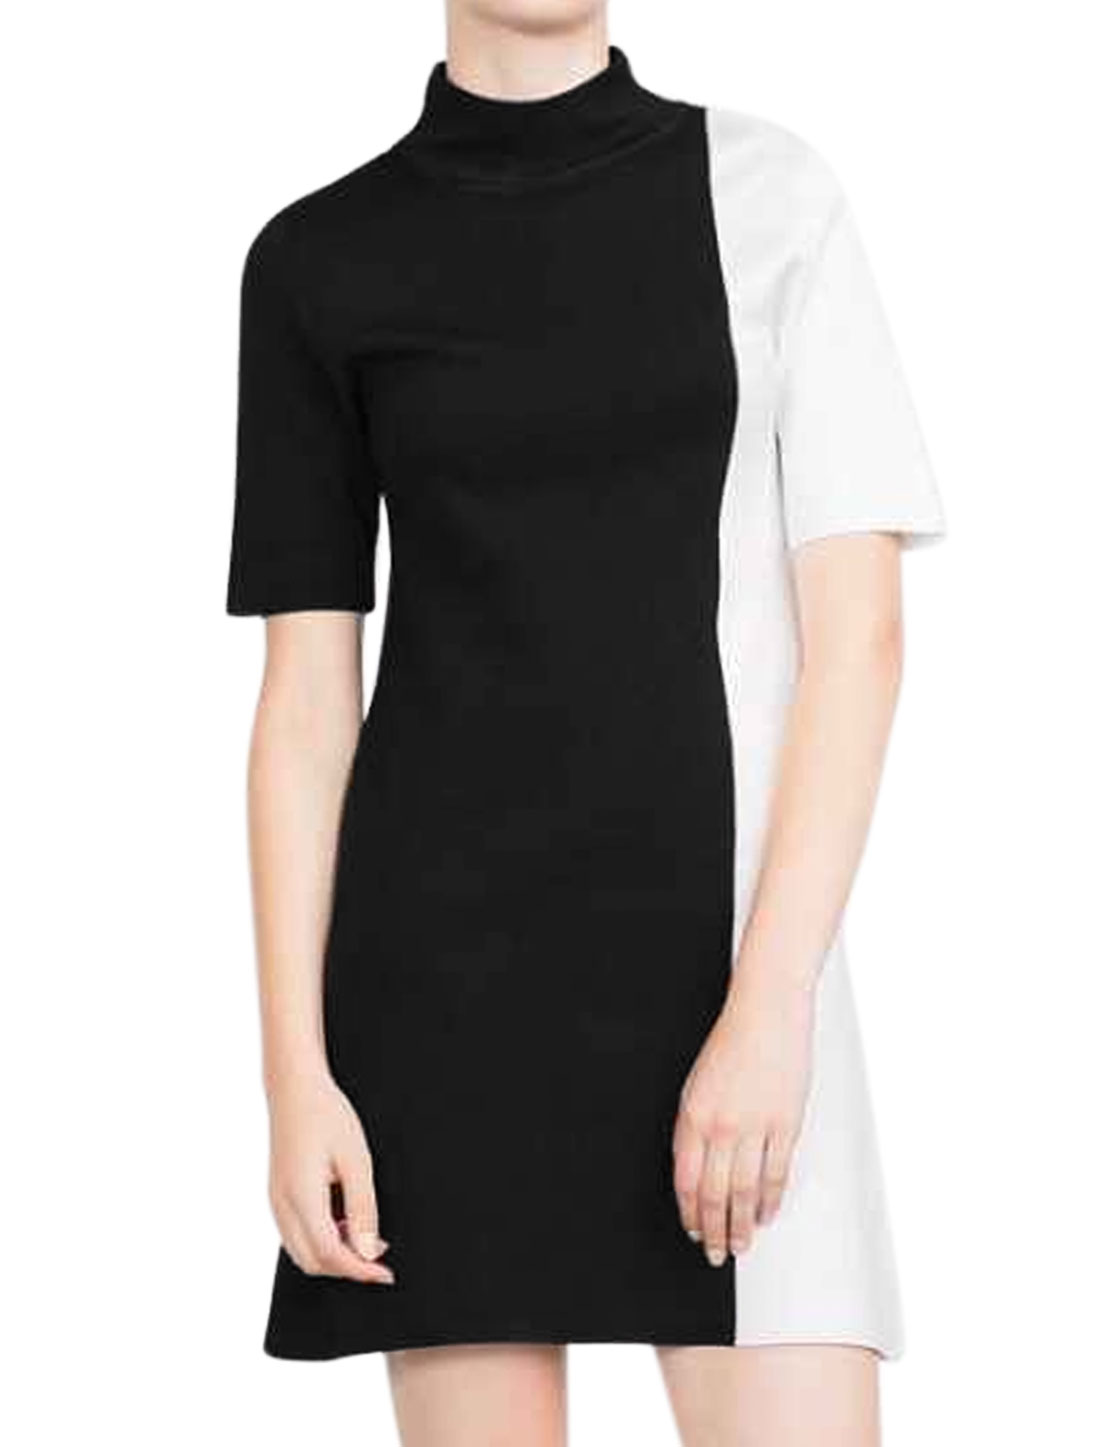 Women Short Sleeves Mock Neck Color Block Tunic Dress Black M